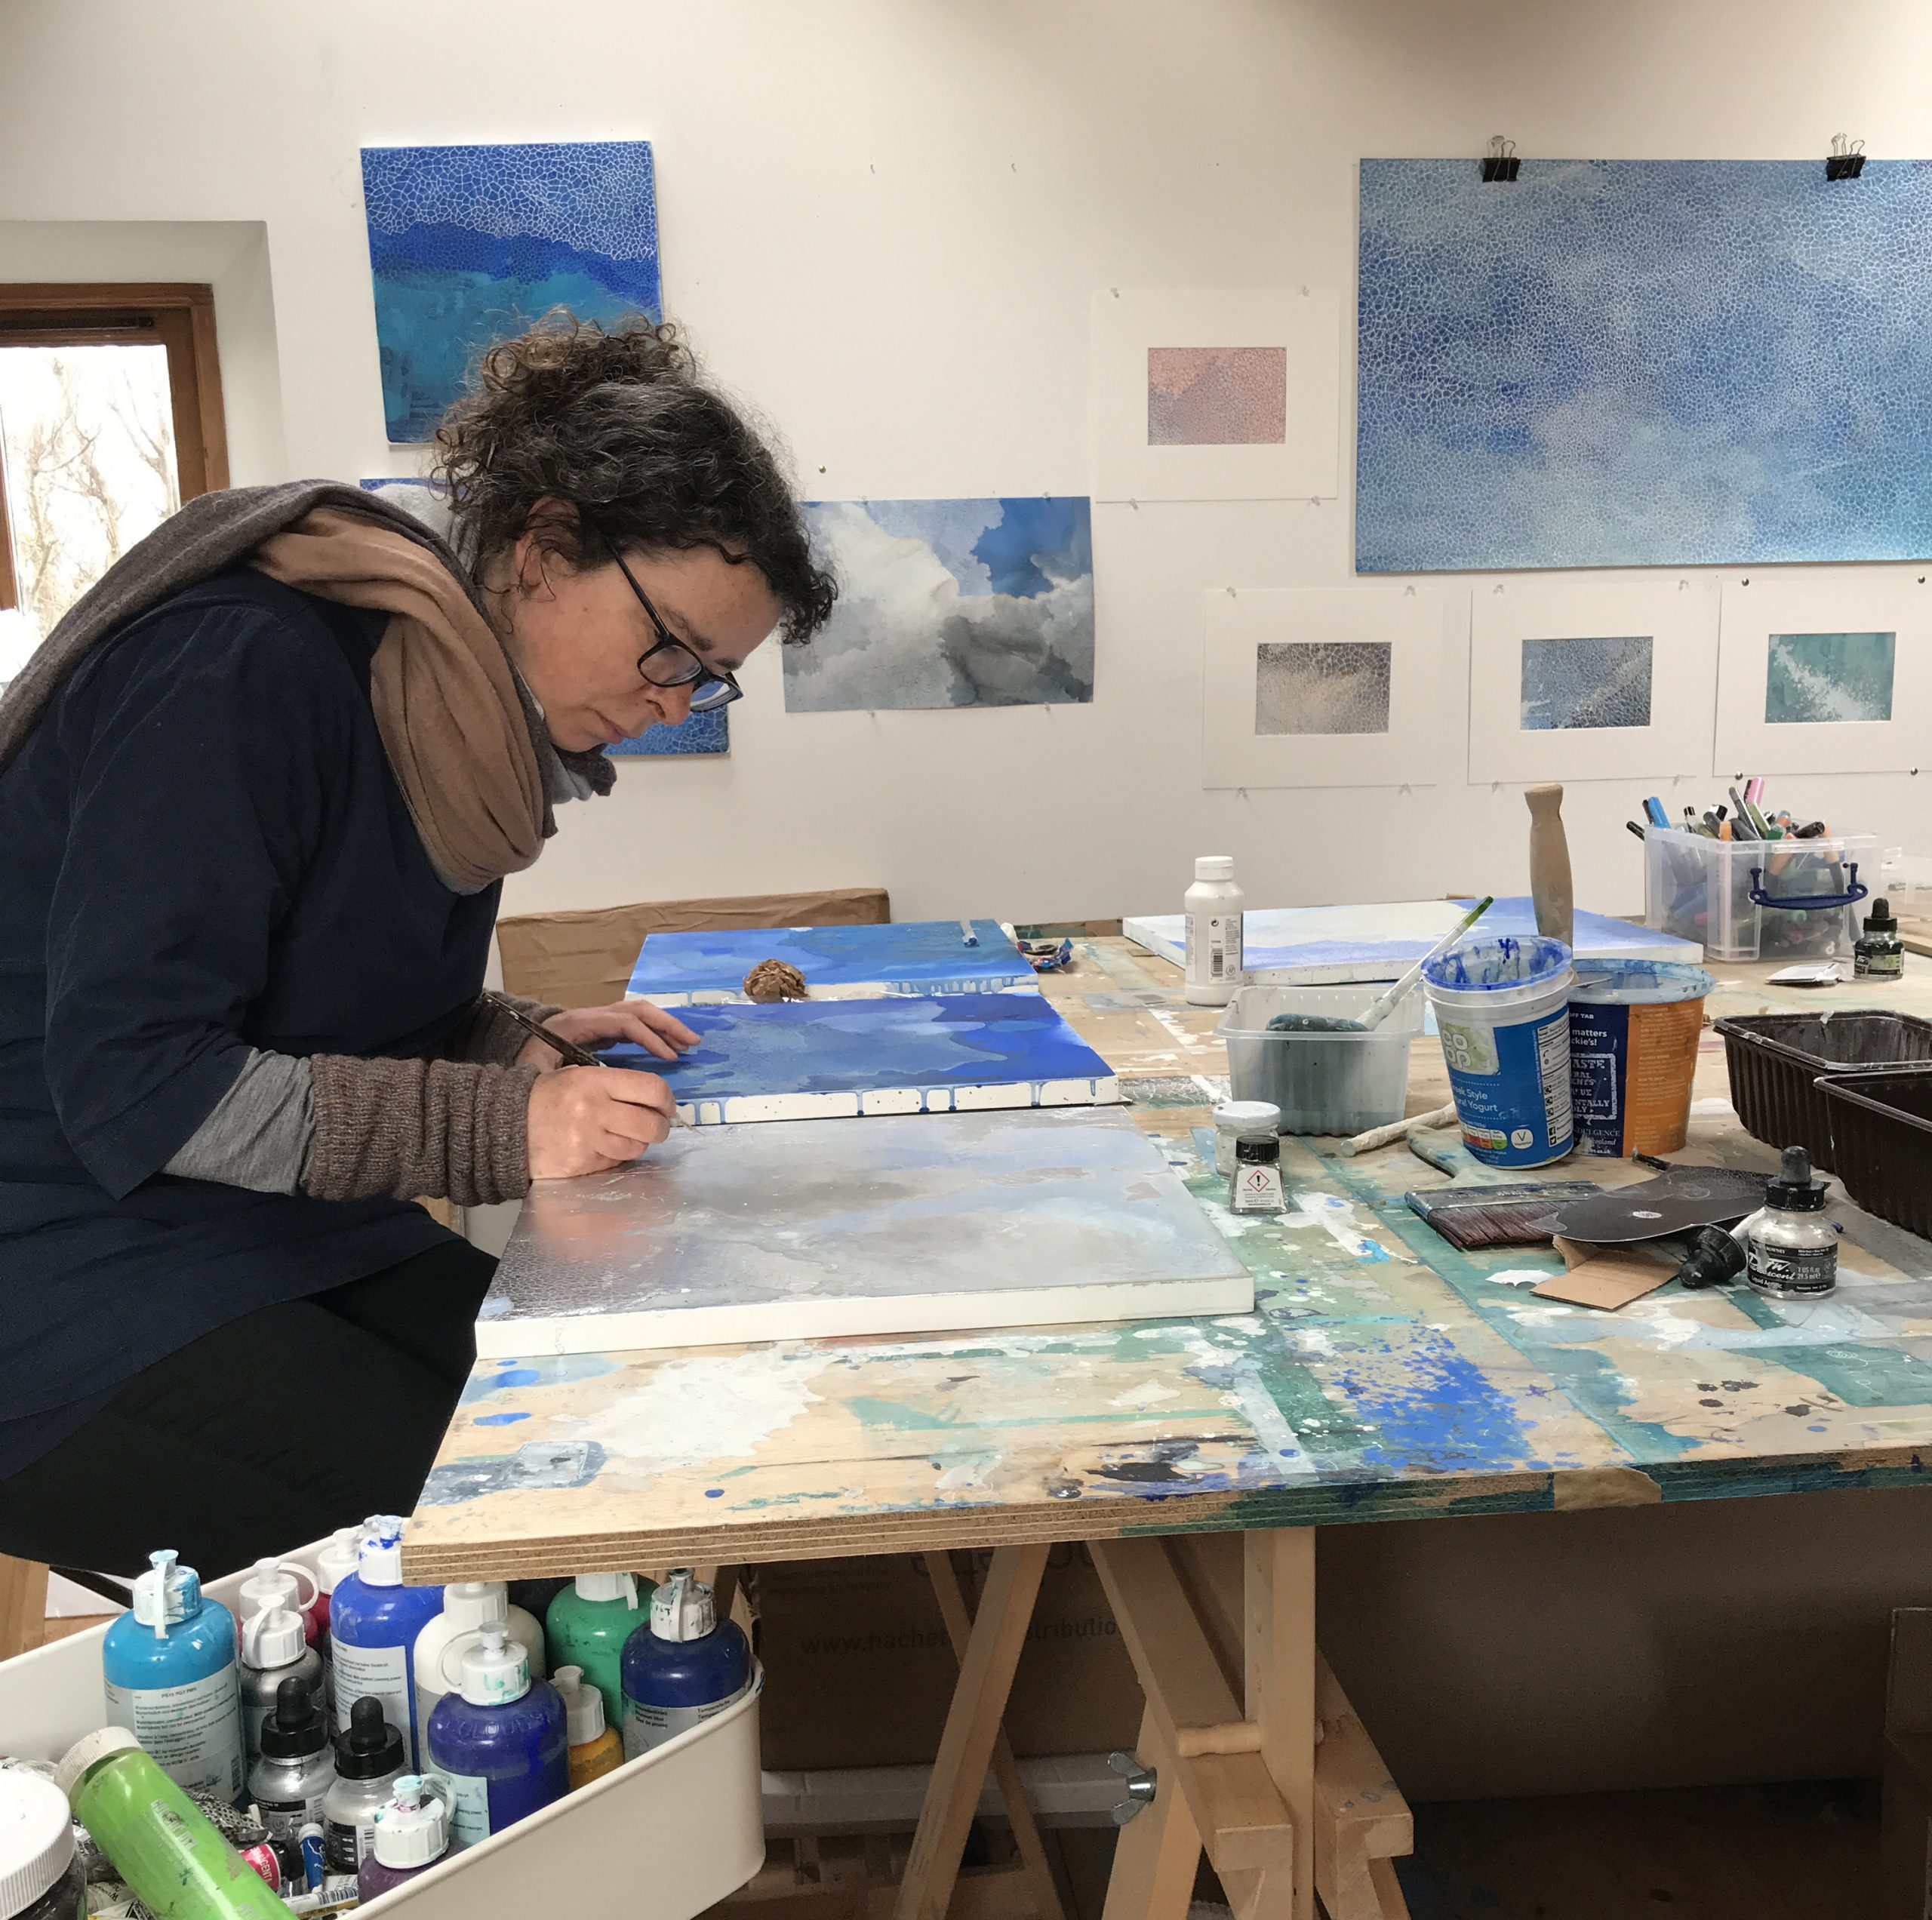 A picture of the artist at work in her studio